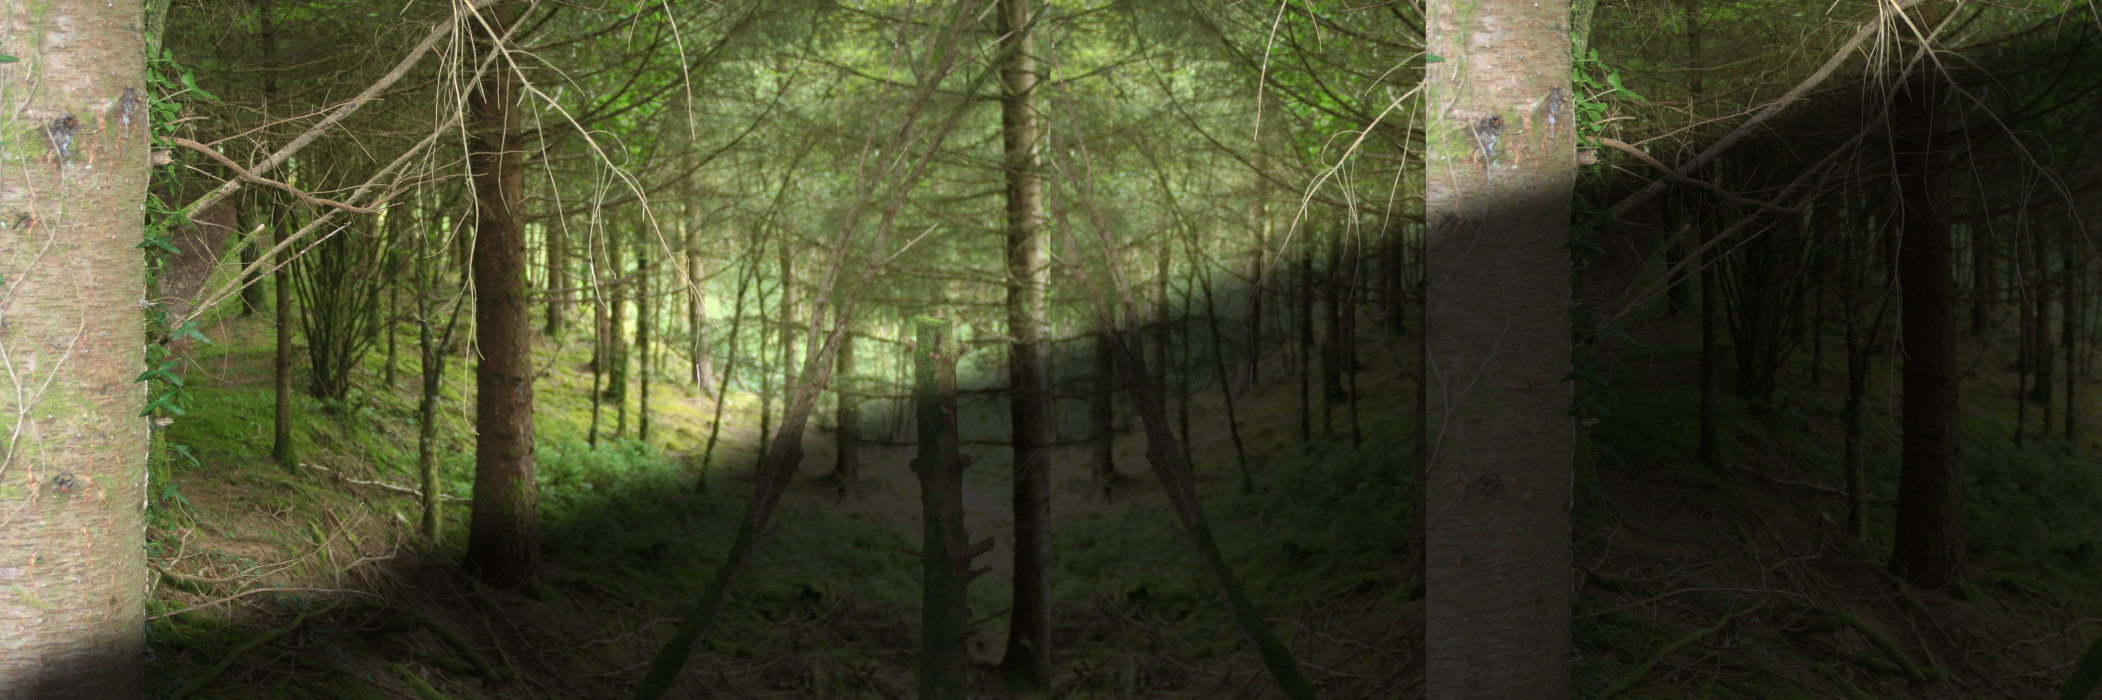 IMG_826oo3-PHOTOMONTAGE-FOREST-700H